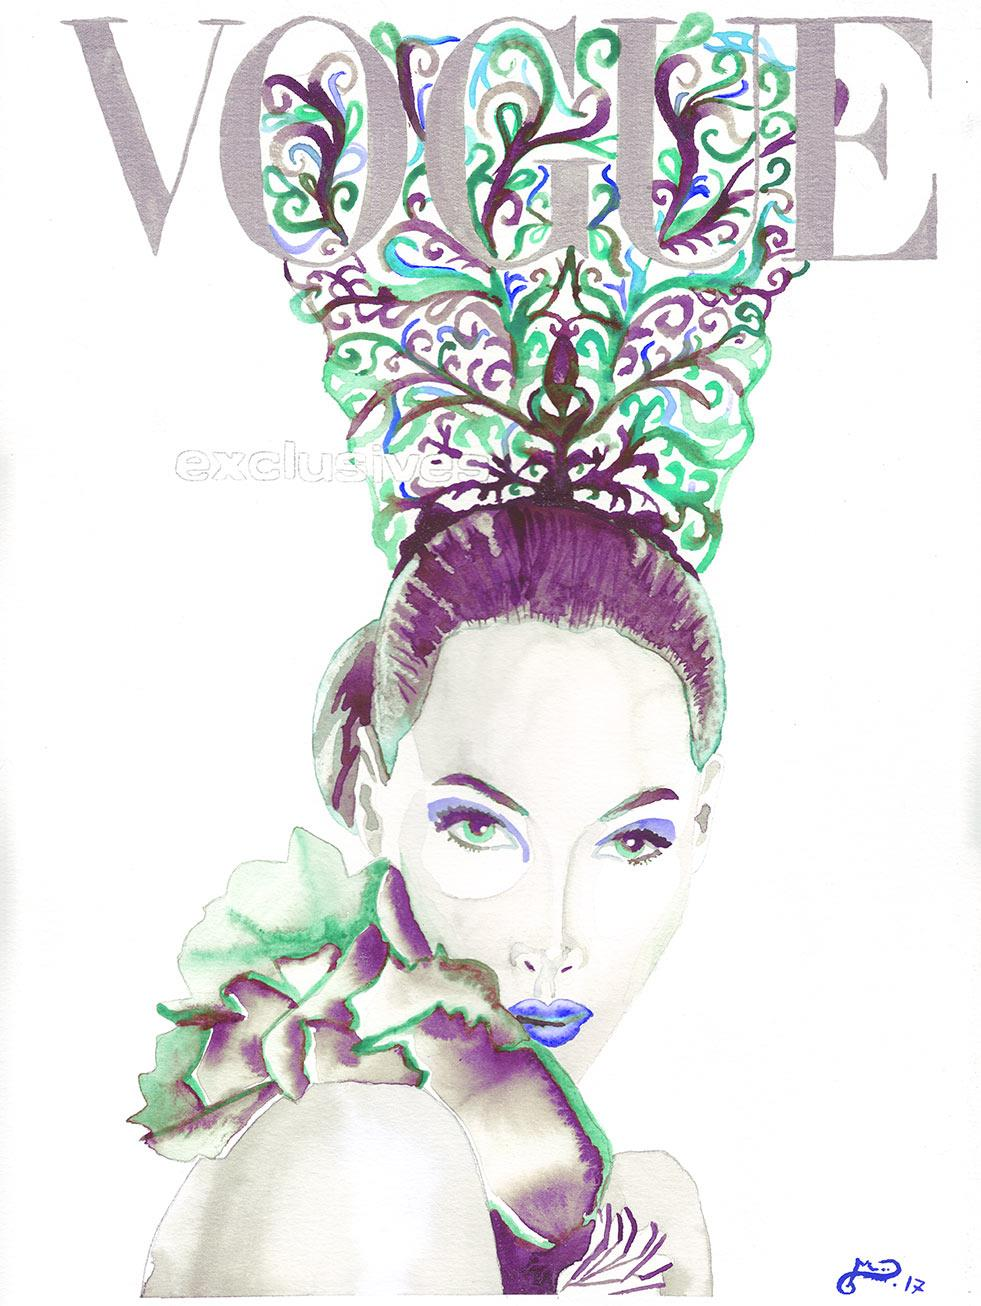 scan-vogue-cristy-turlington-peineta-rosa-acuarela